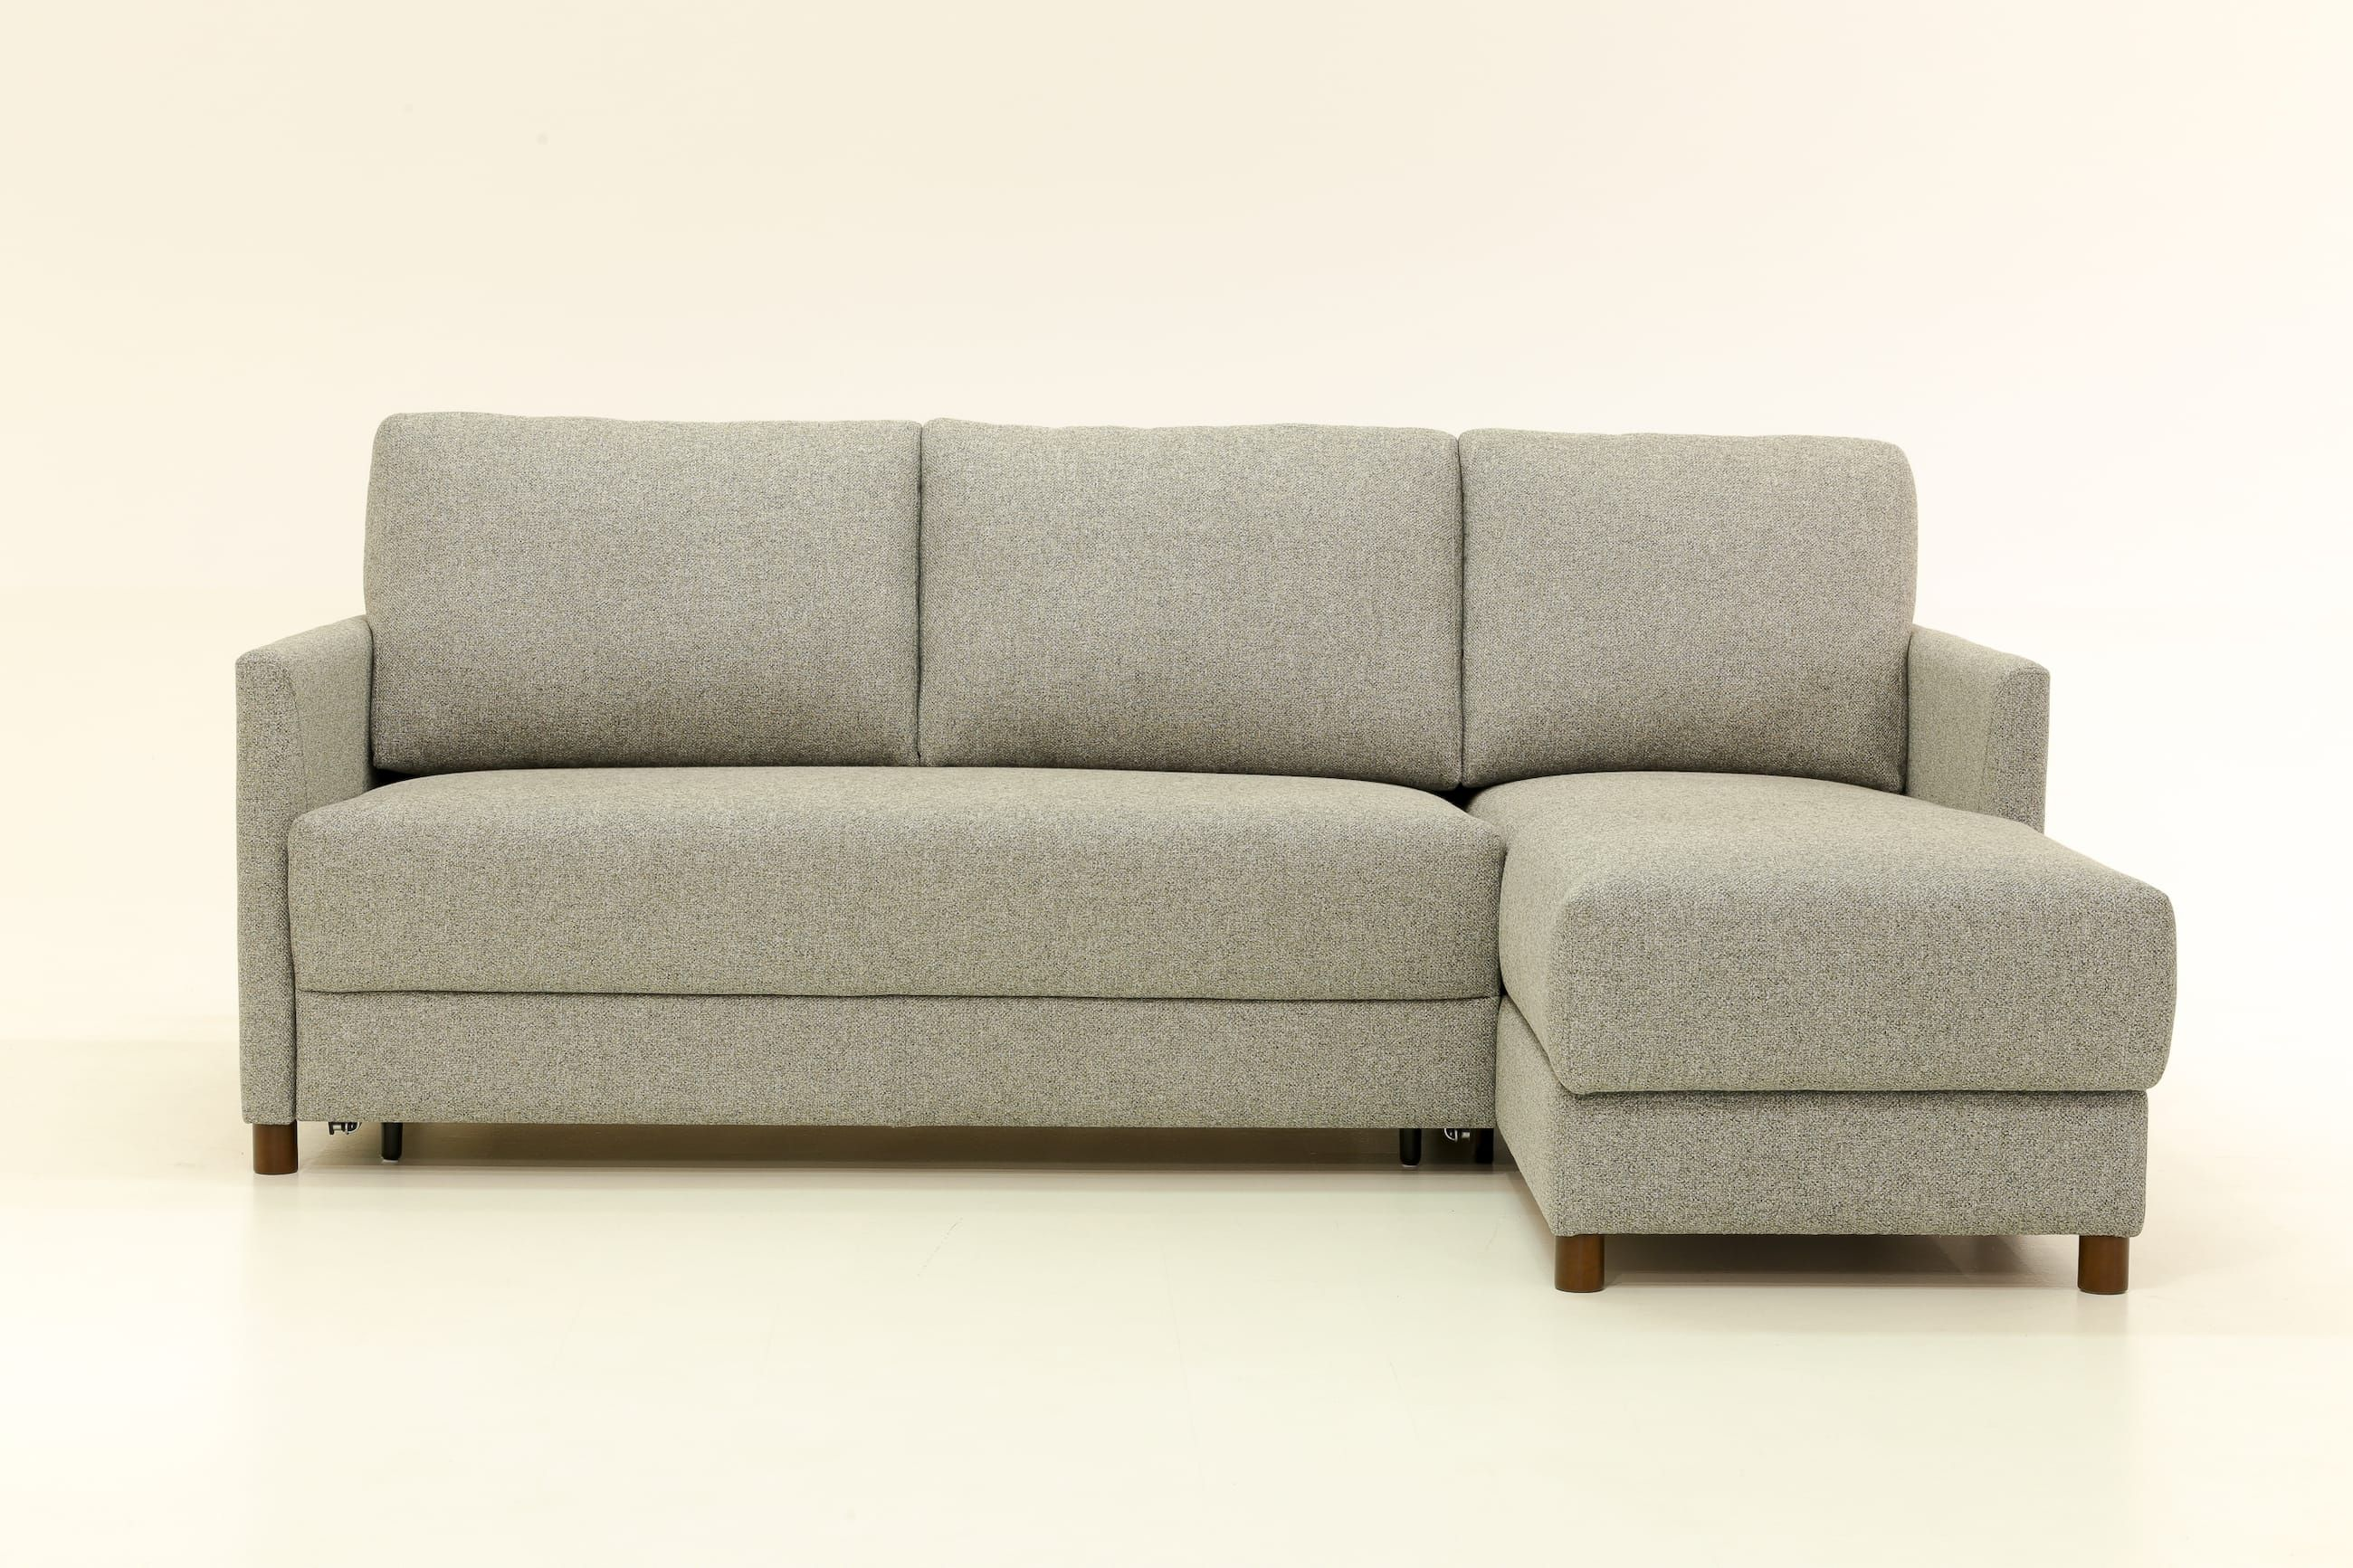 Pint Sectional Sofa Sleeper Full Xl Size Rhf By Luonto Furniture In 2020 Sectional Sofa Sectional Sleeper Sofa